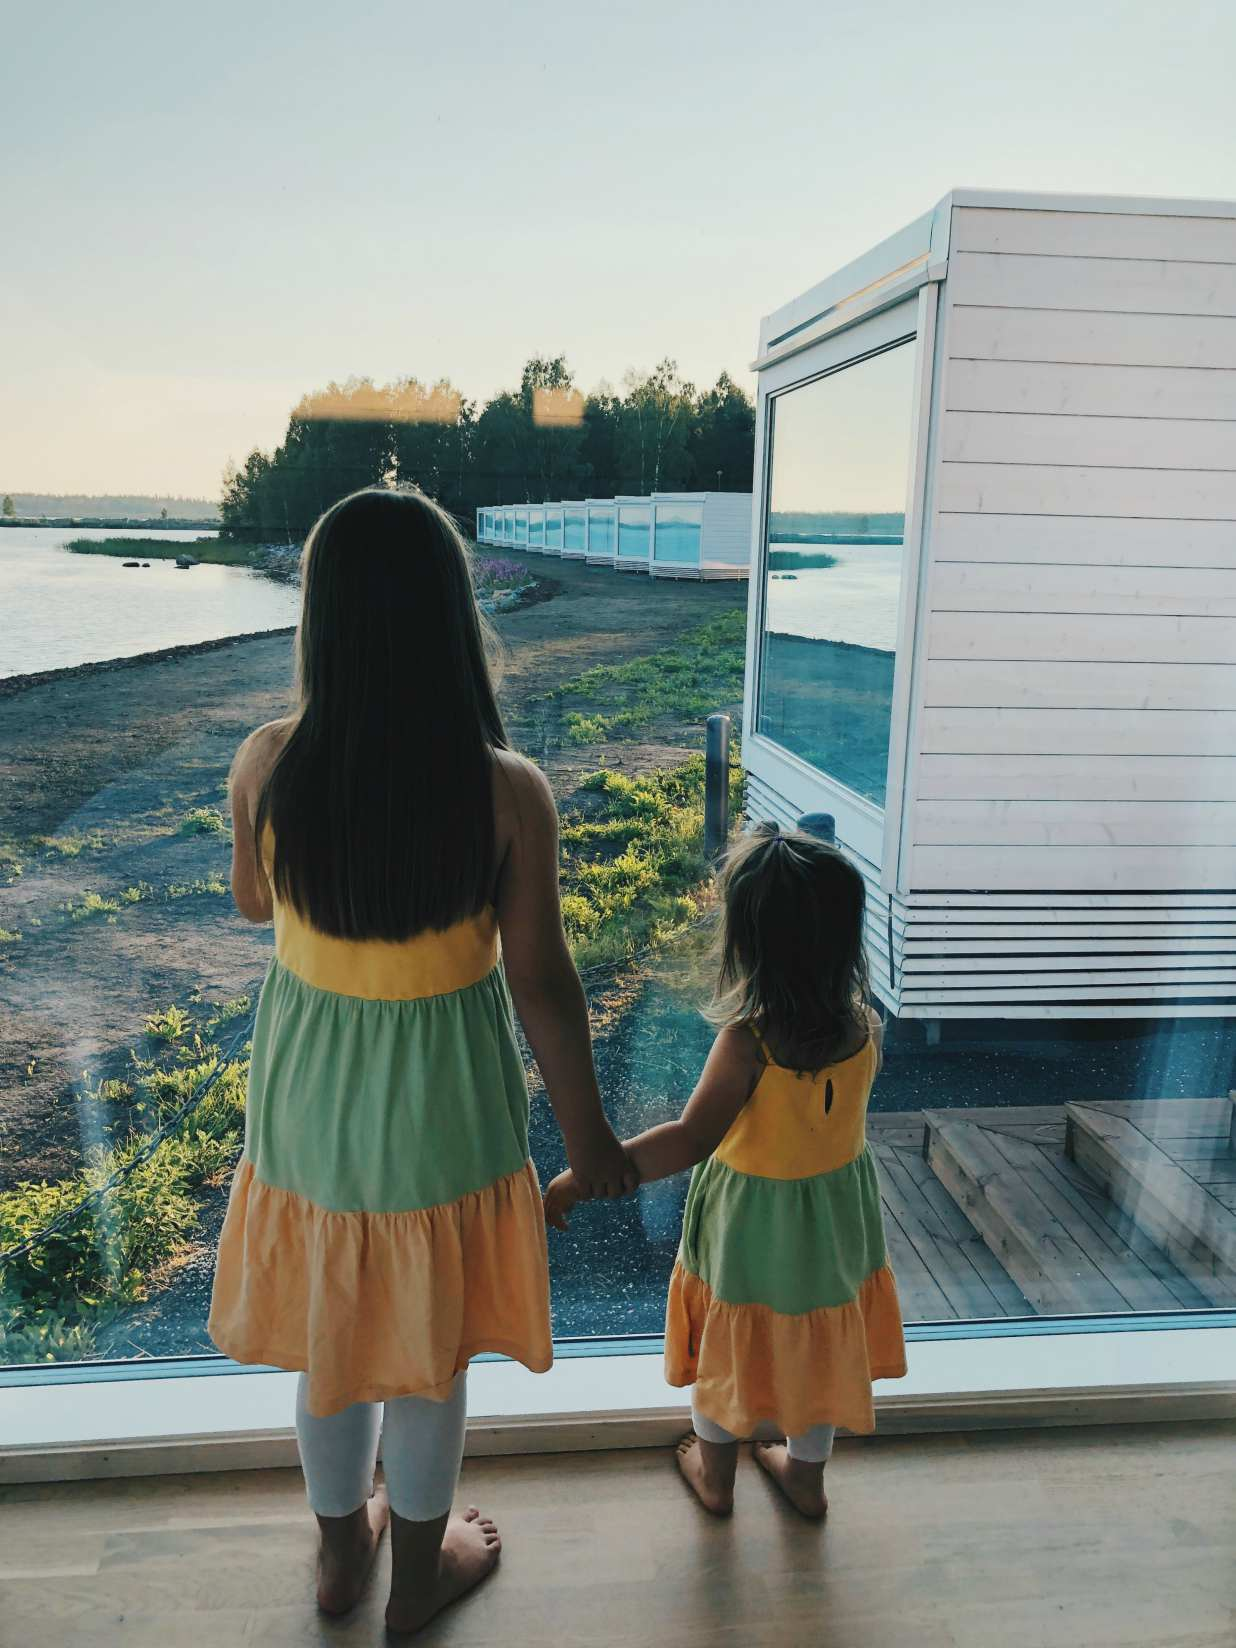 seaside_glass_villa_kids.jpg